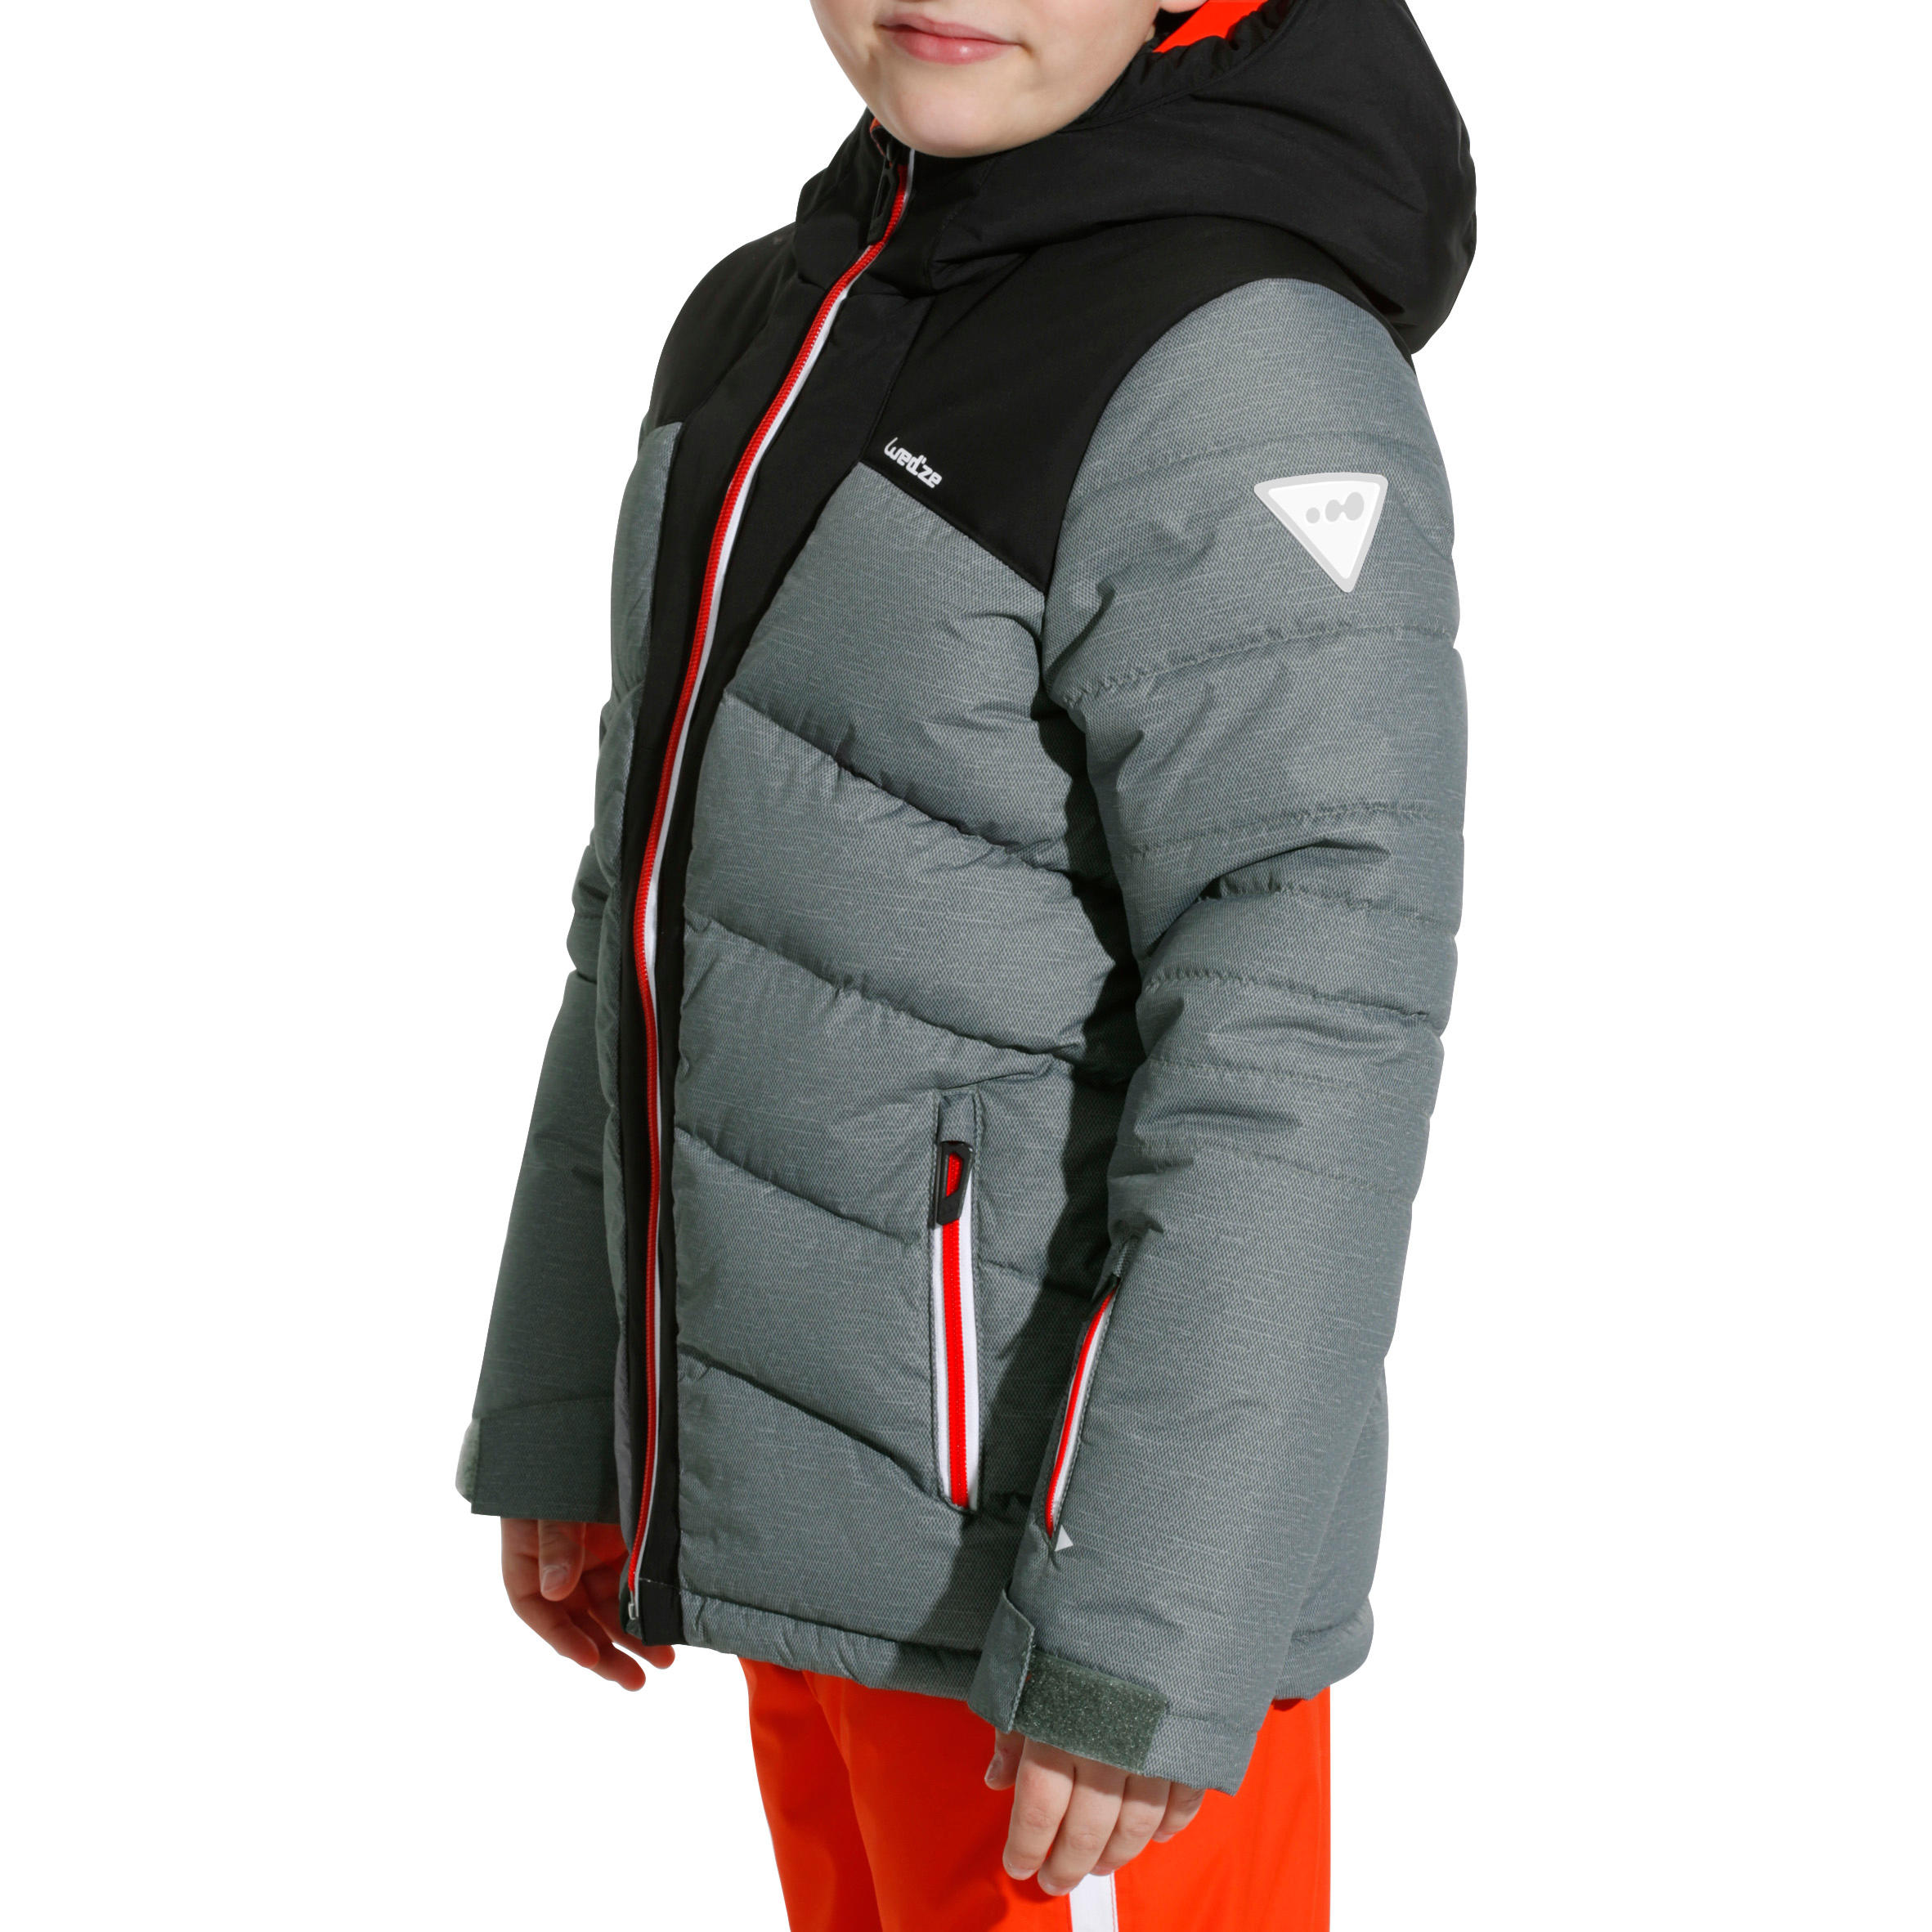 Manteau chaud decathlon